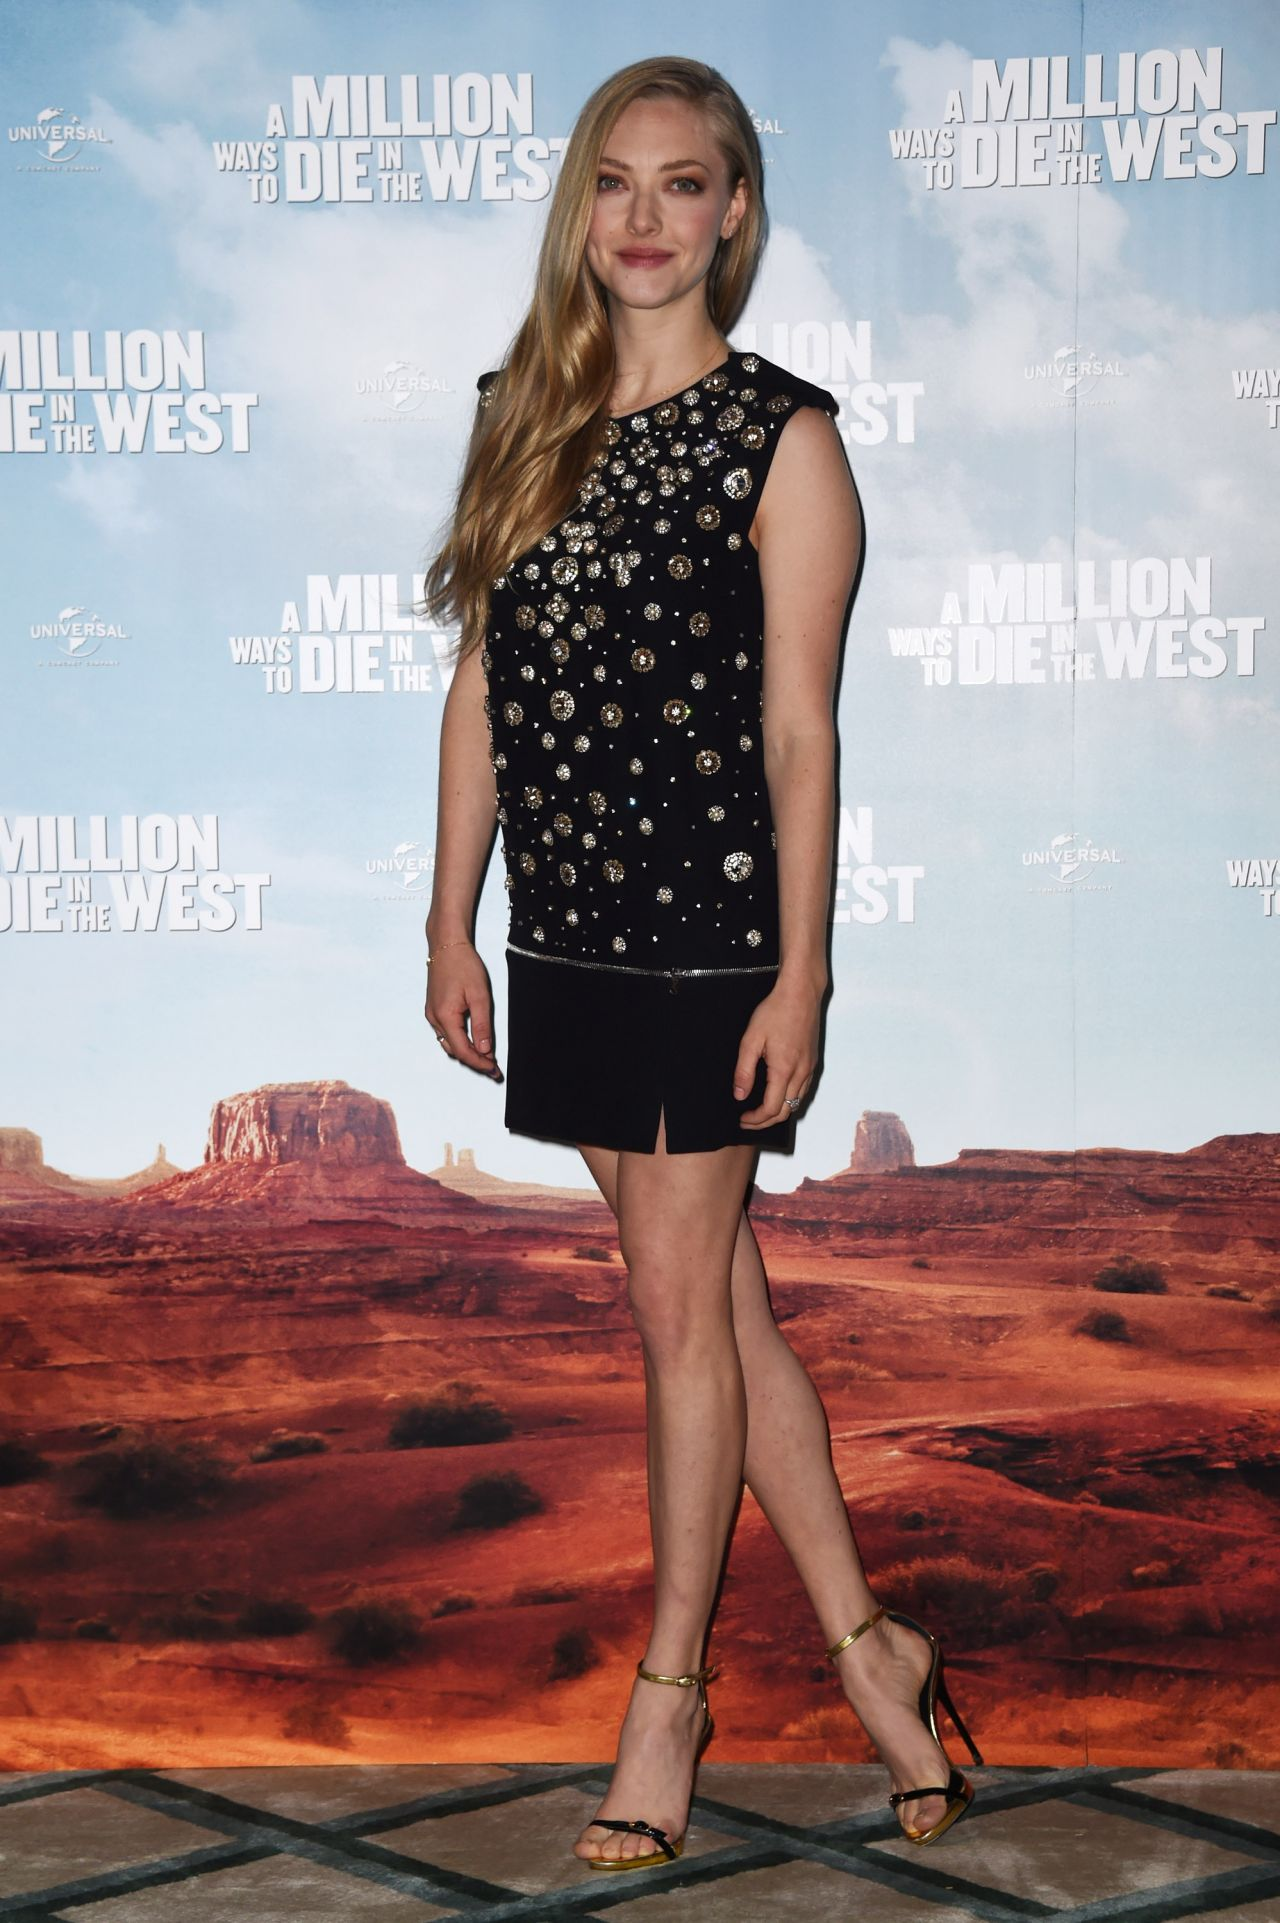 A Million Ways To Die In The West Set Pictures Amanda Seyfried A Million Ways To Die In